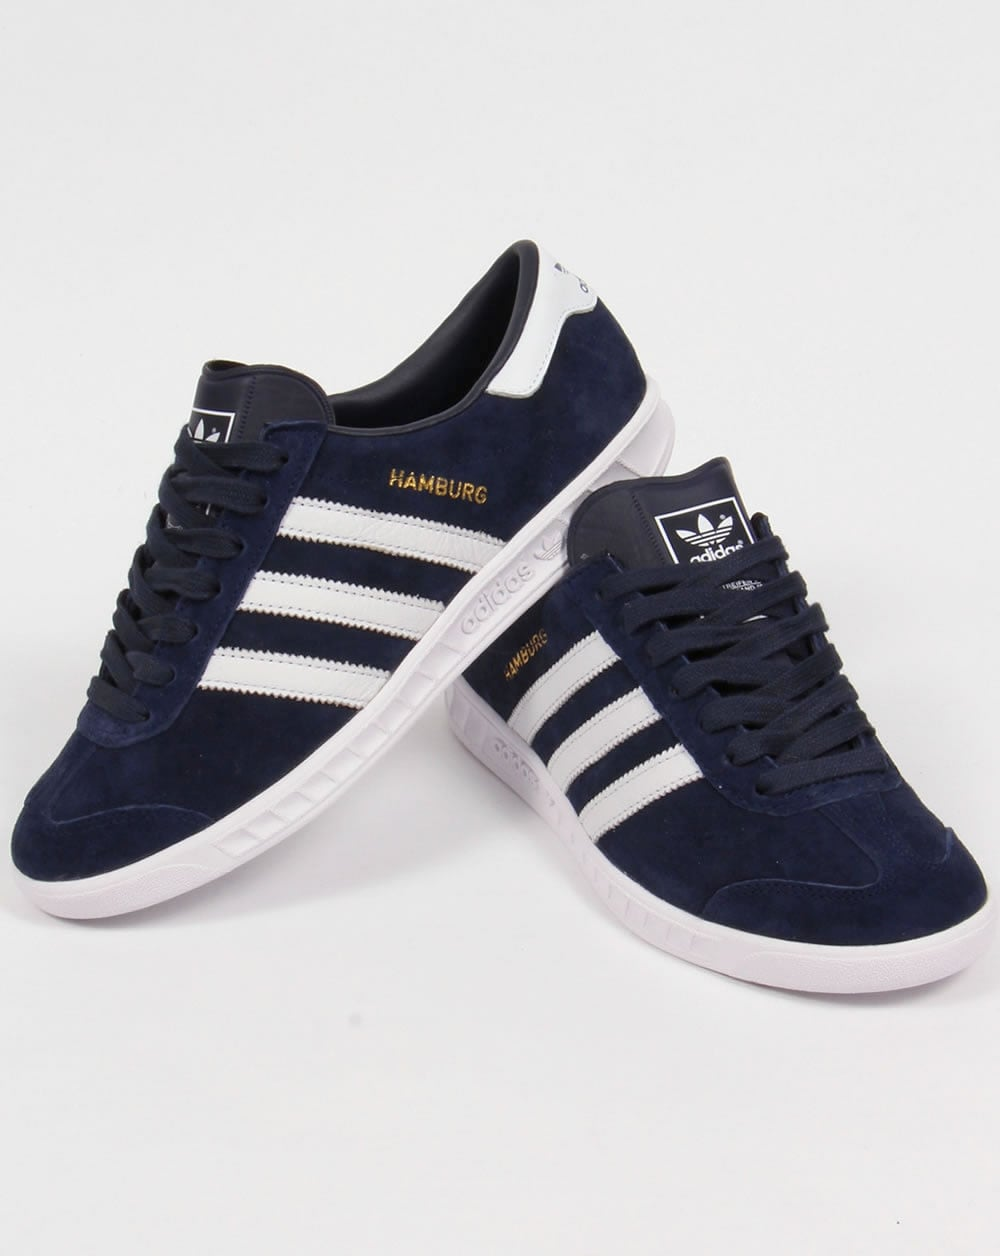 Mens Retro Sneakers Shoes